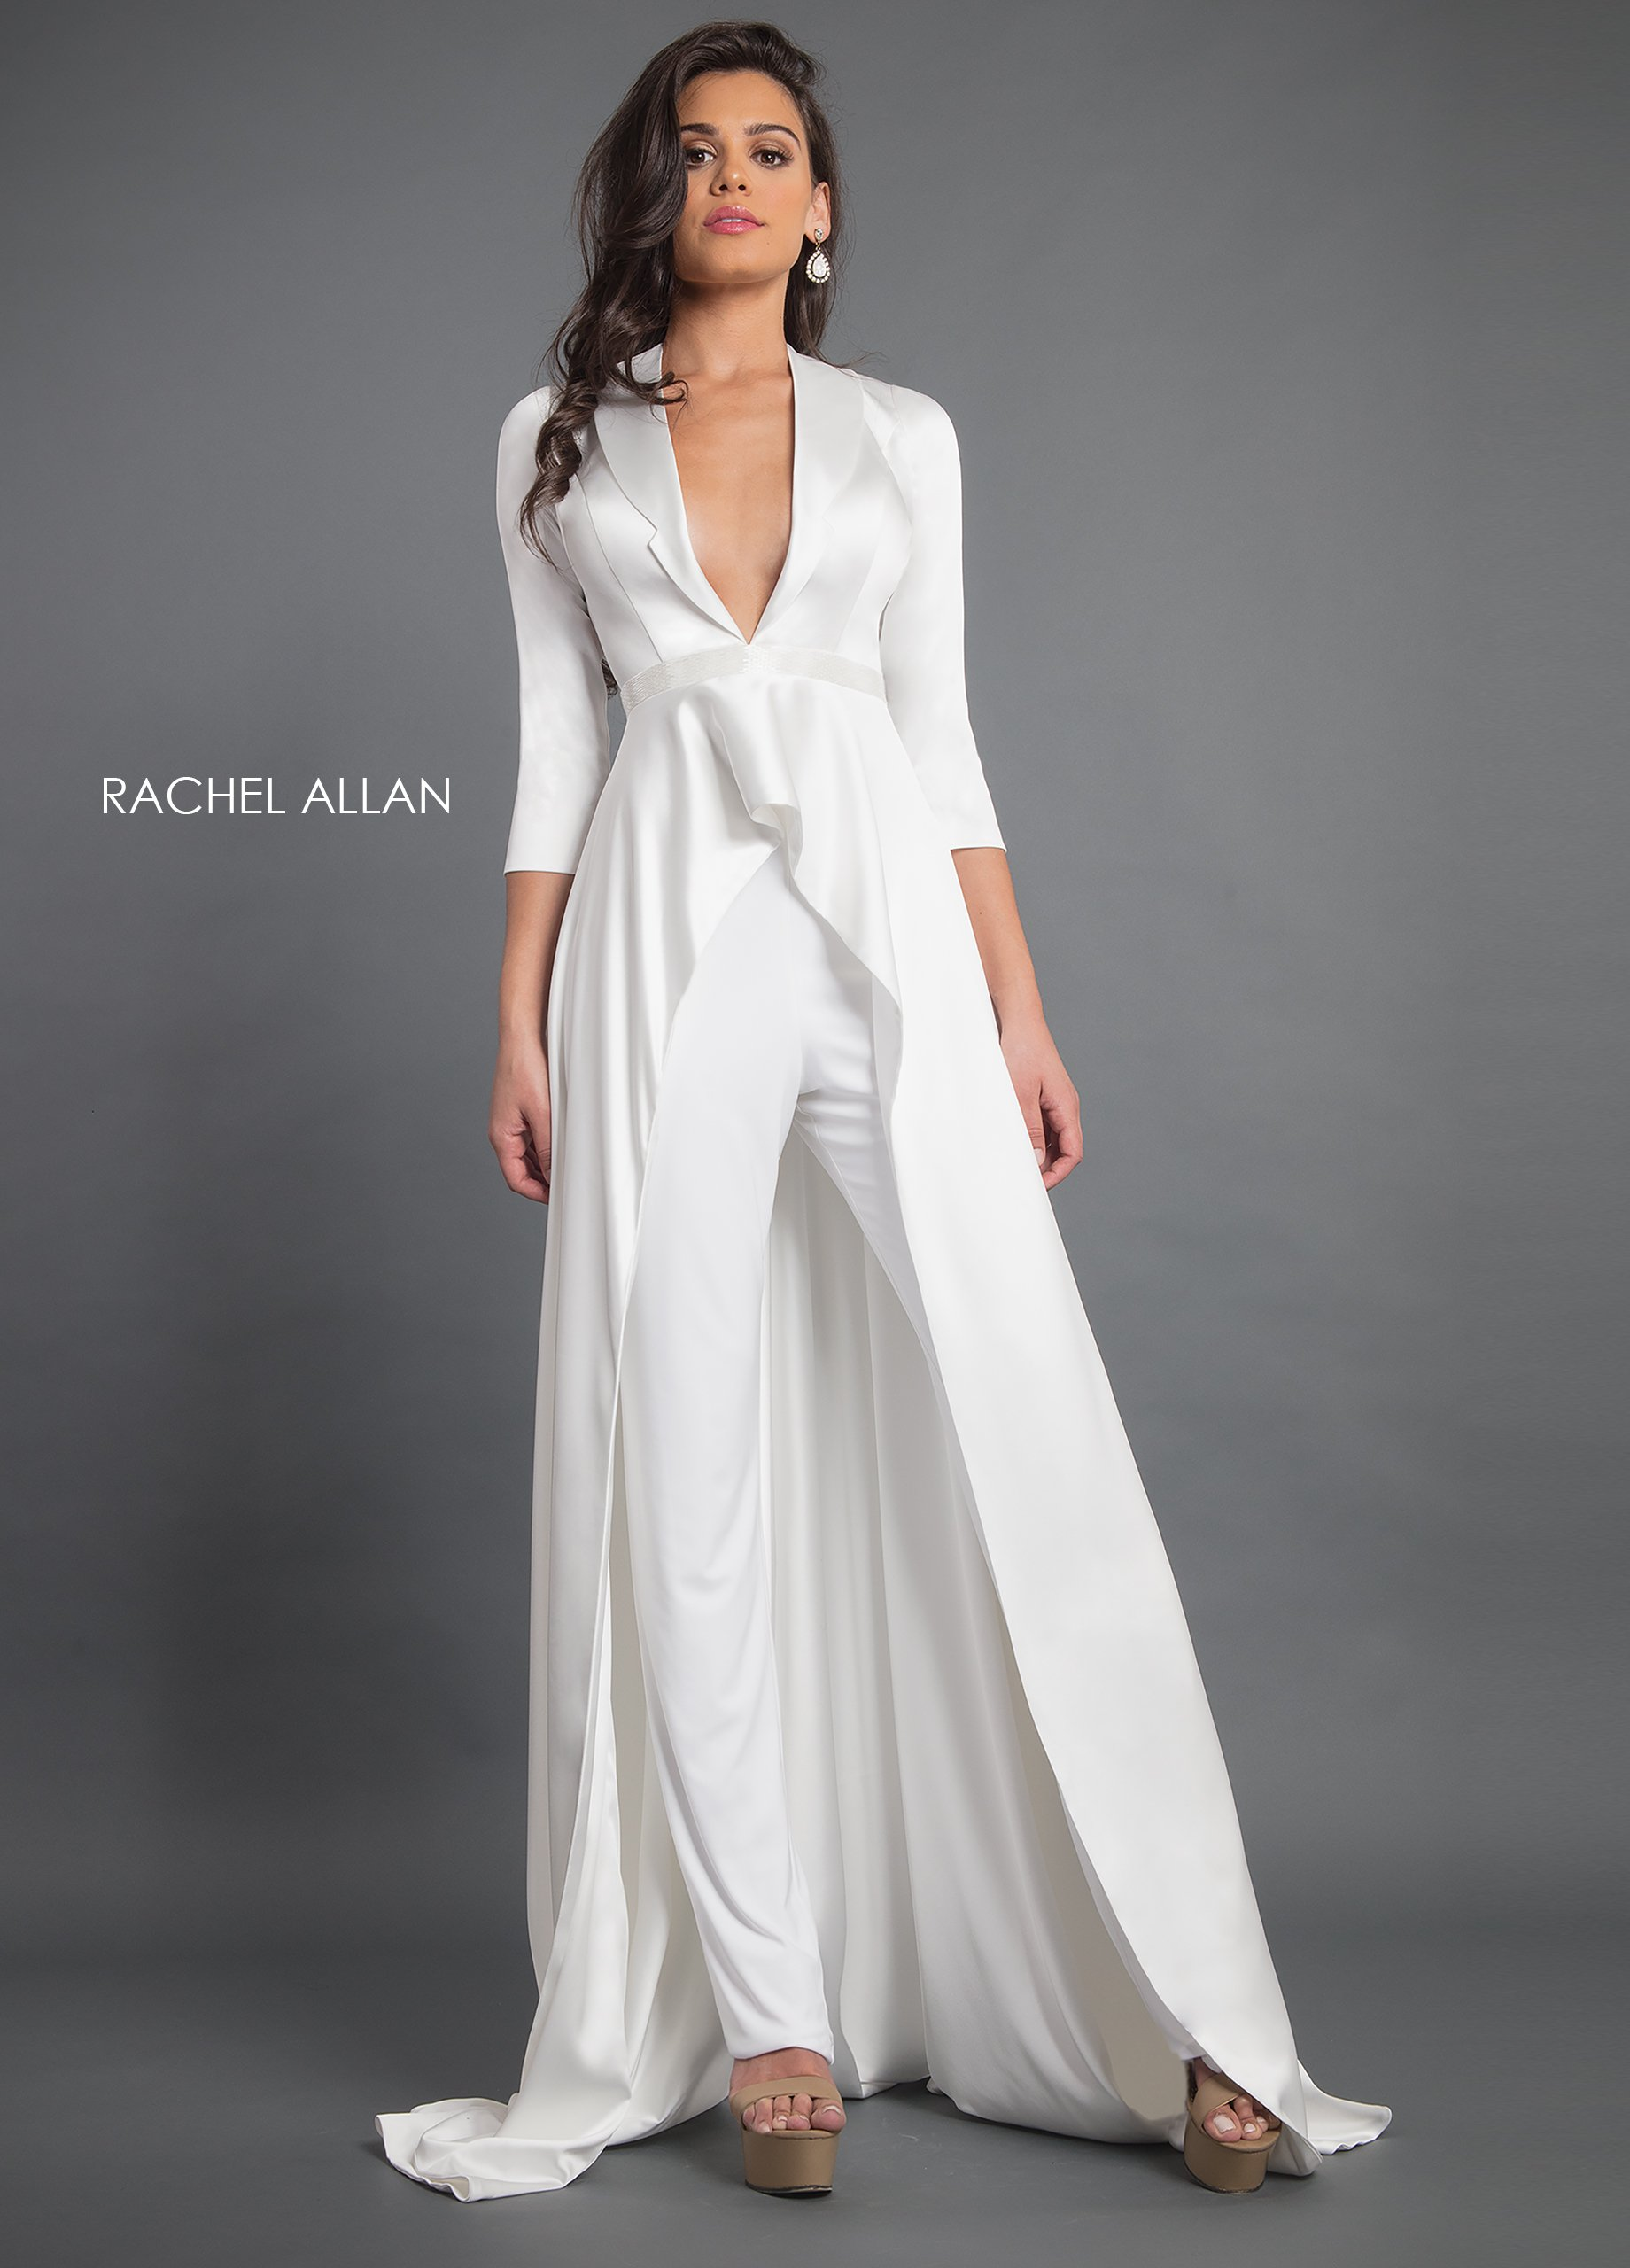 V-Neck Jumpsuit Couture Dresses in White Color